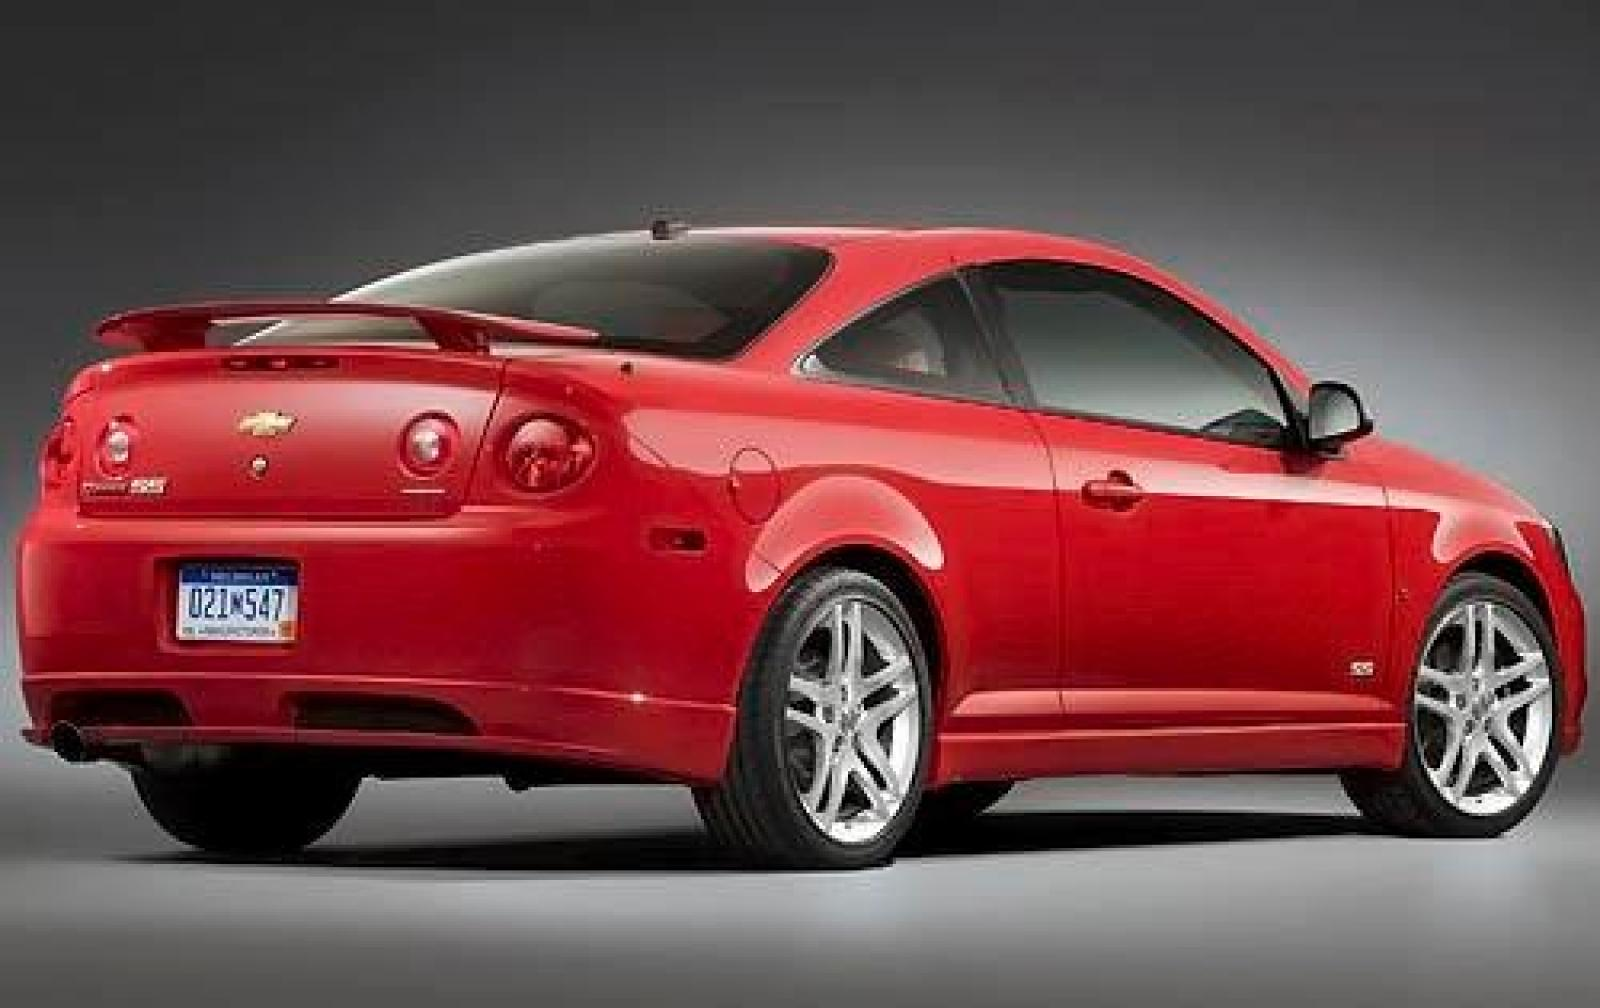 2009 chevrolet cobalt information and photos zombiedrive. Black Bedroom Furniture Sets. Home Design Ideas